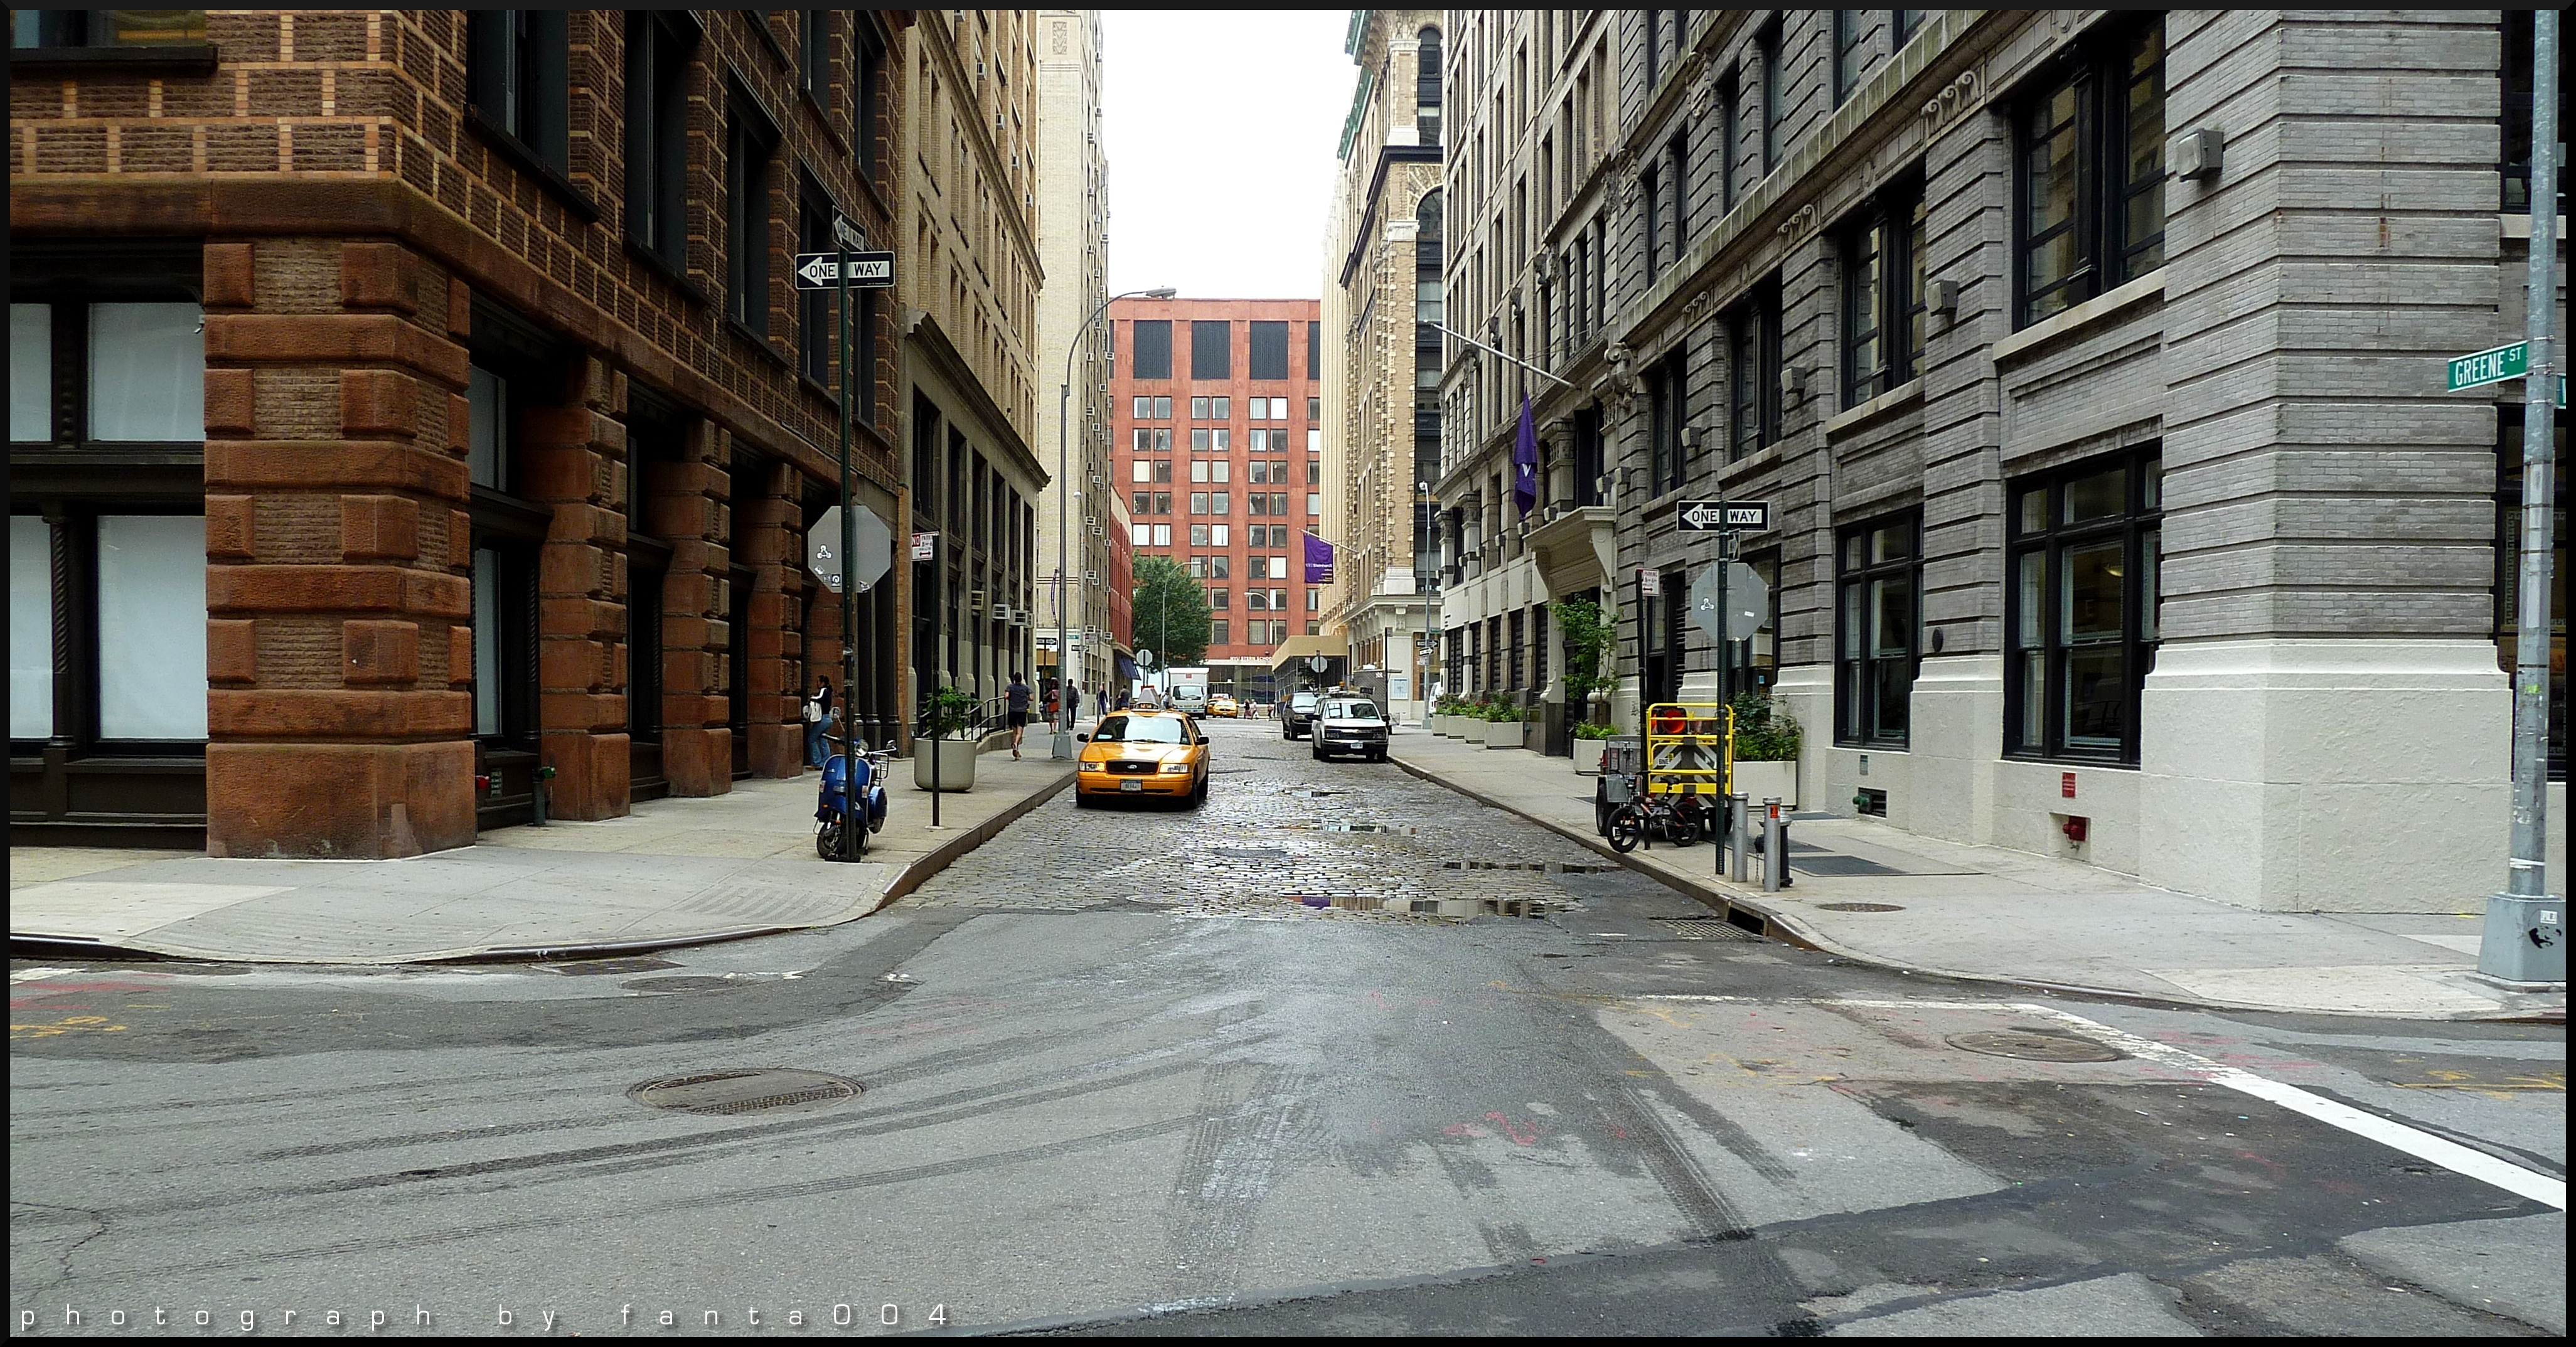 In the streets of new york07 jpg picture